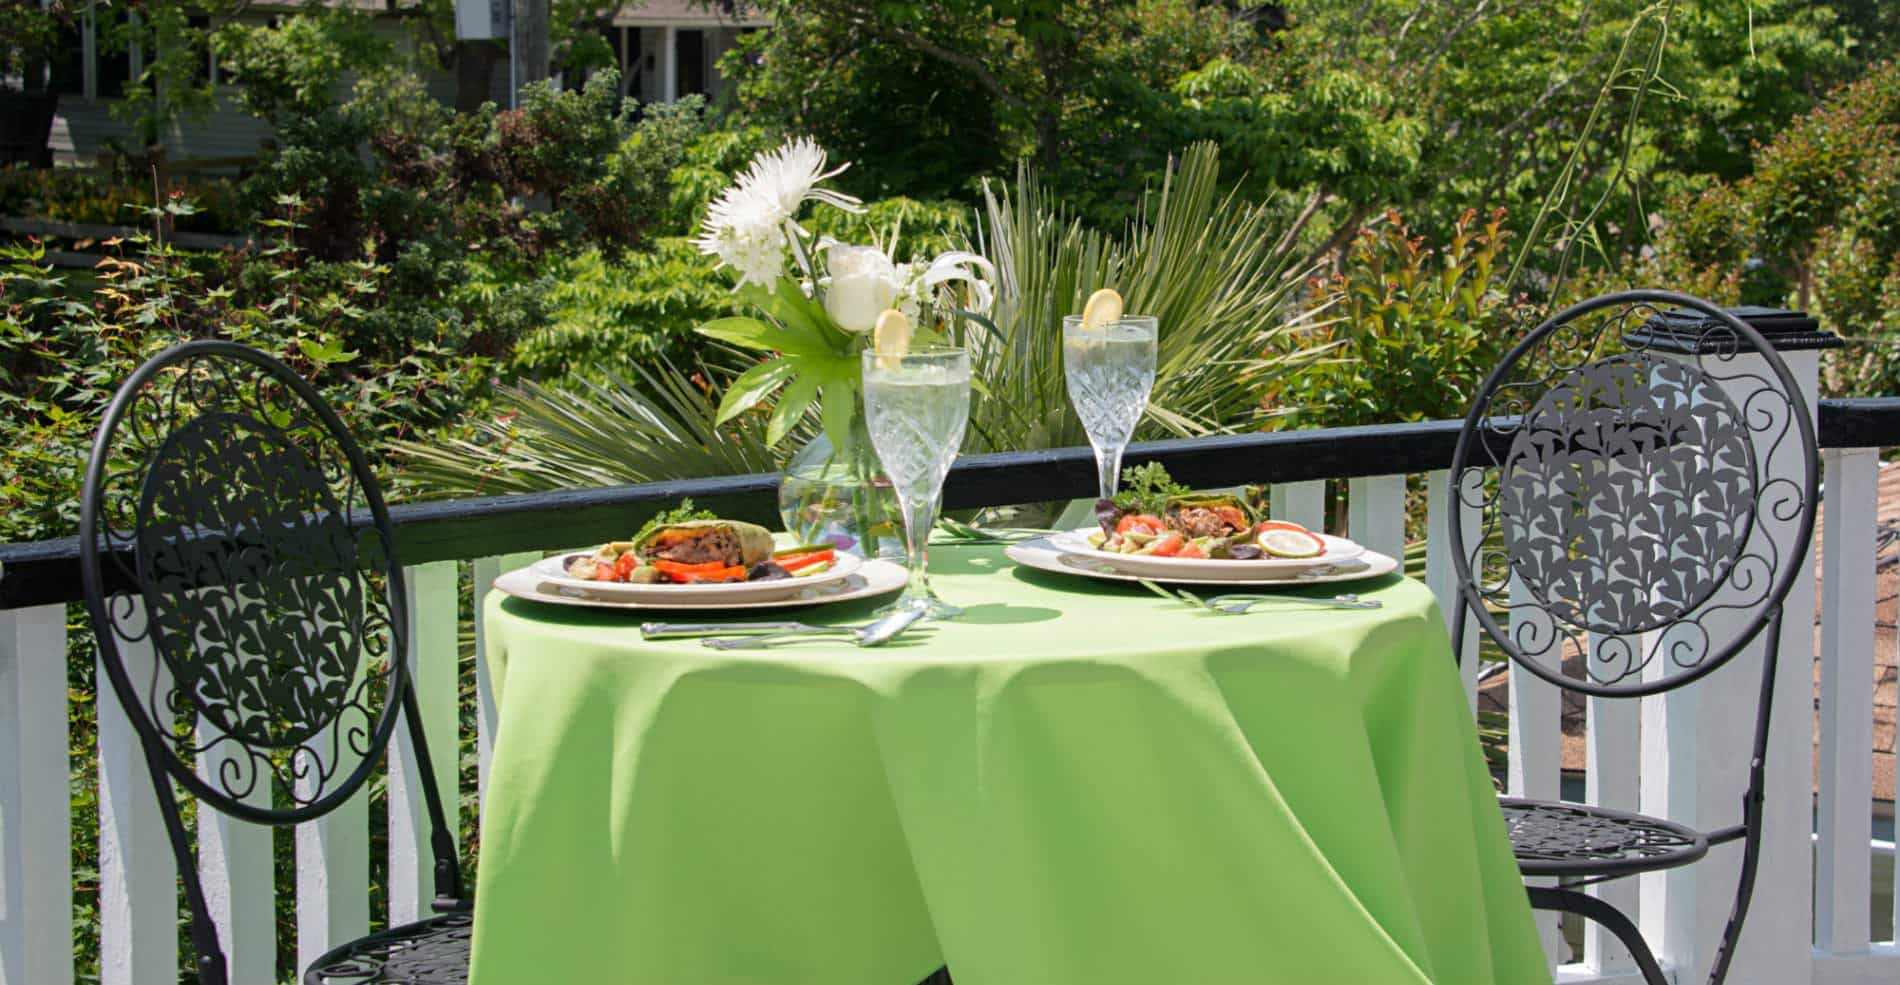 On a patio is a small bistro table with a green table cloth is a meal set for two